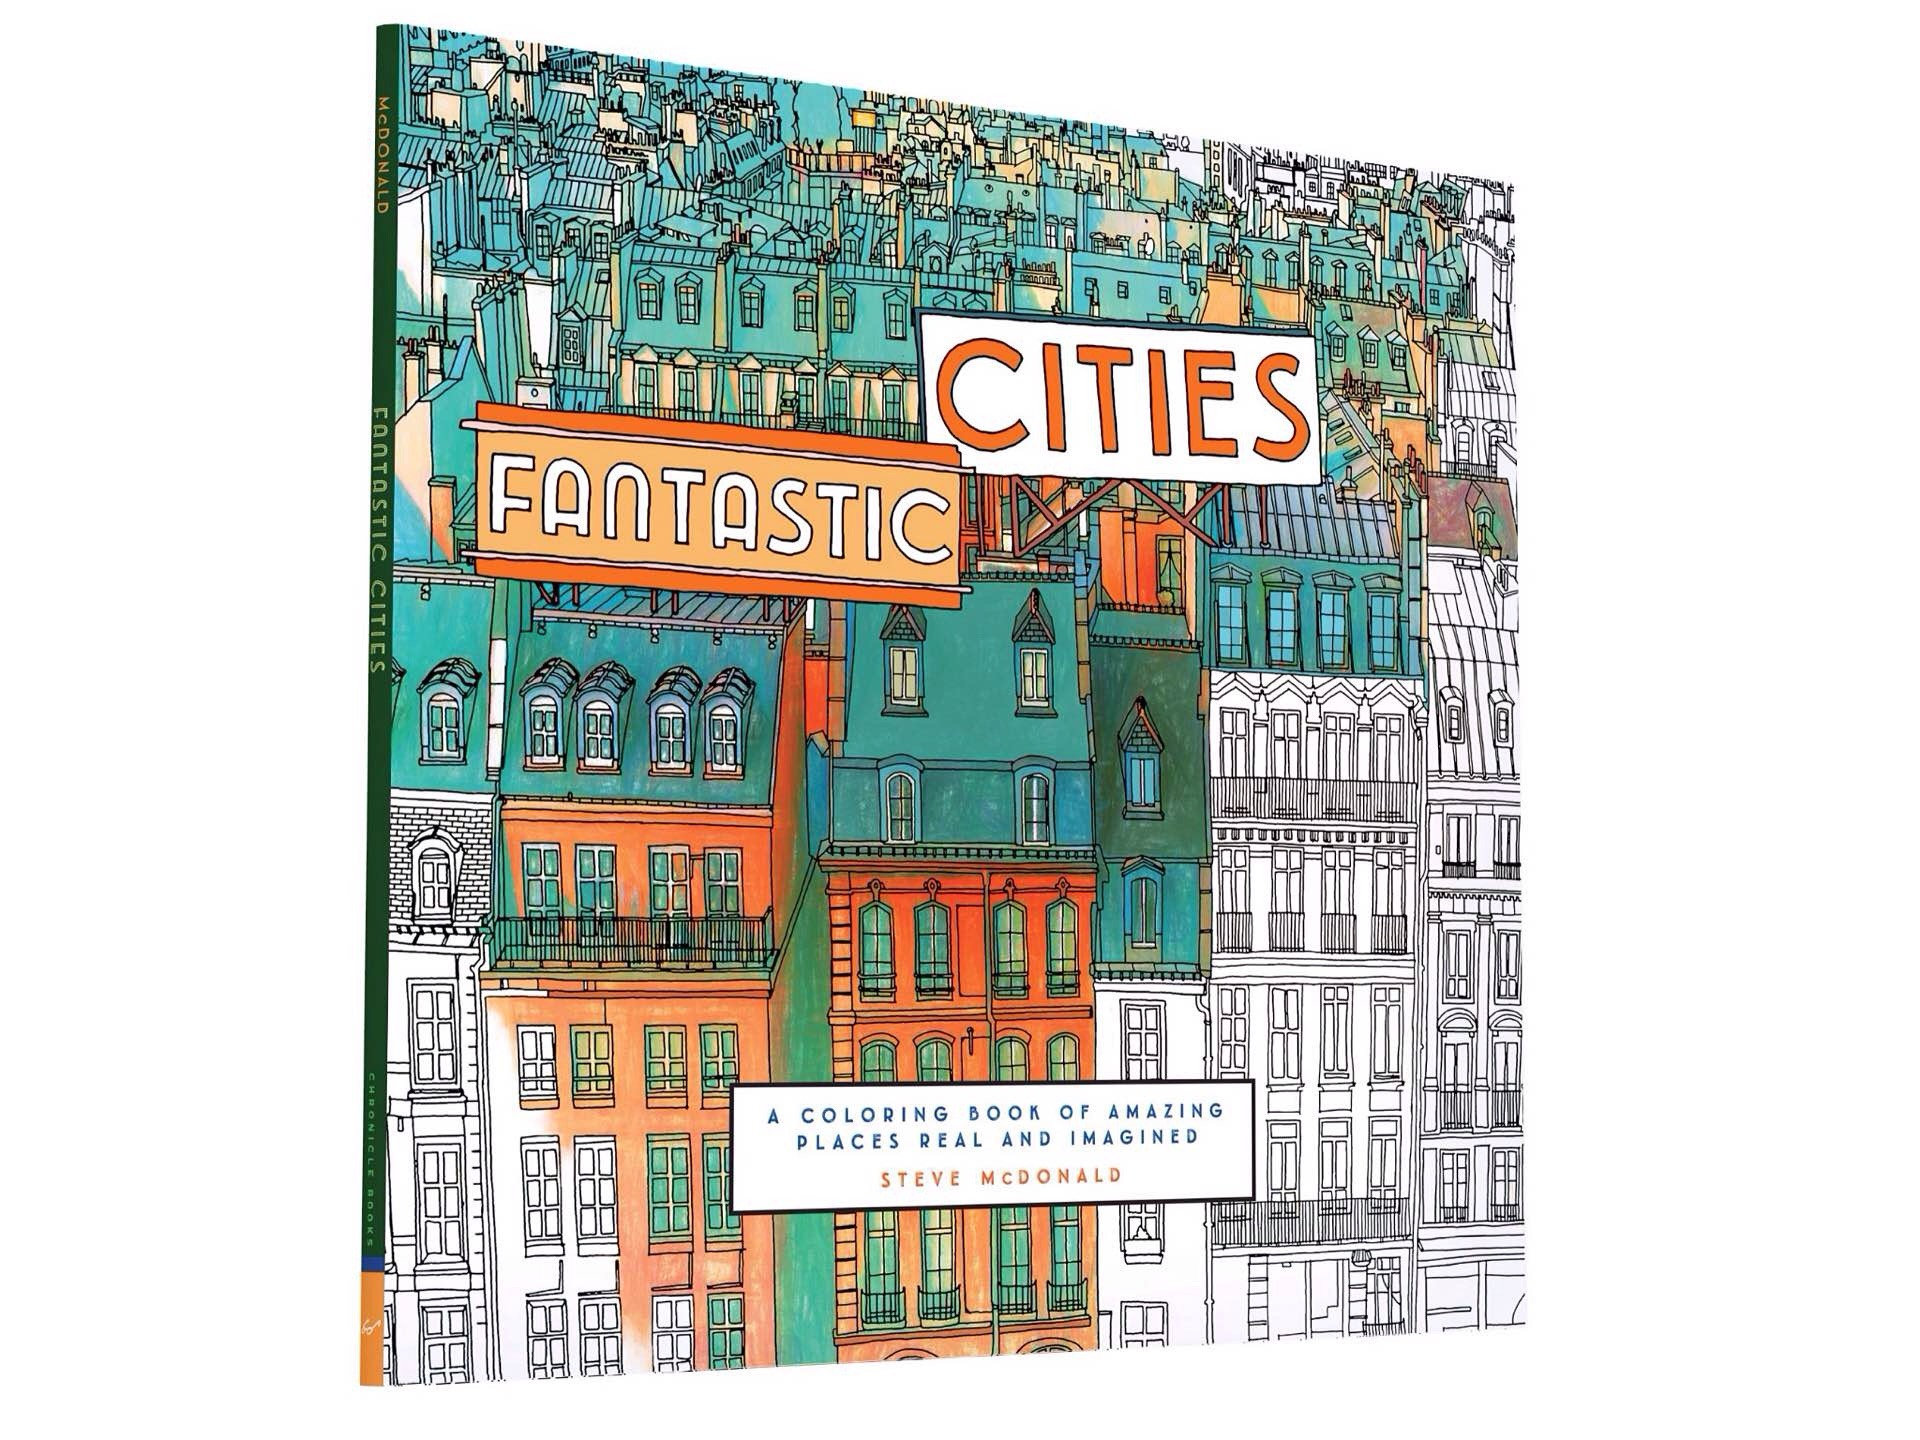 Fantastic Cities by Steve McDonald. ($10)